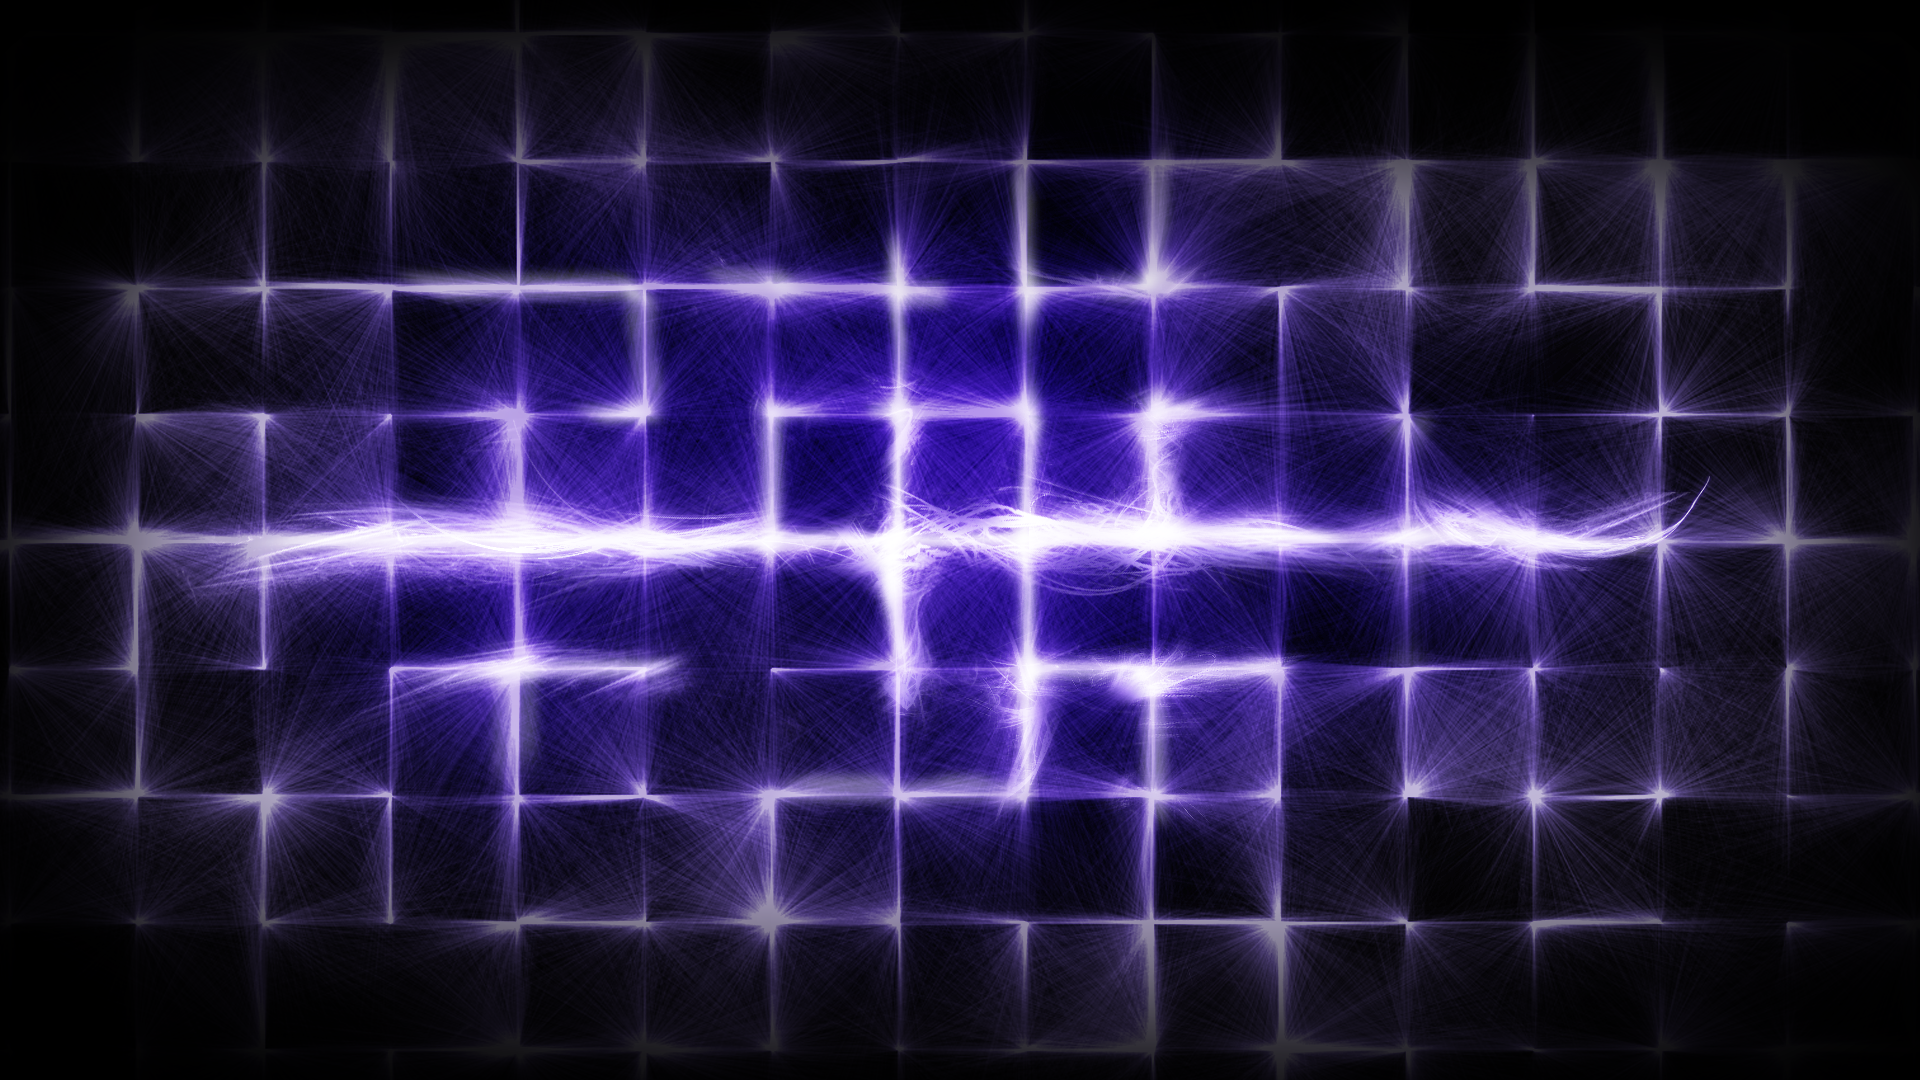 Light Grid Purple Hd Wallpaper Background Image